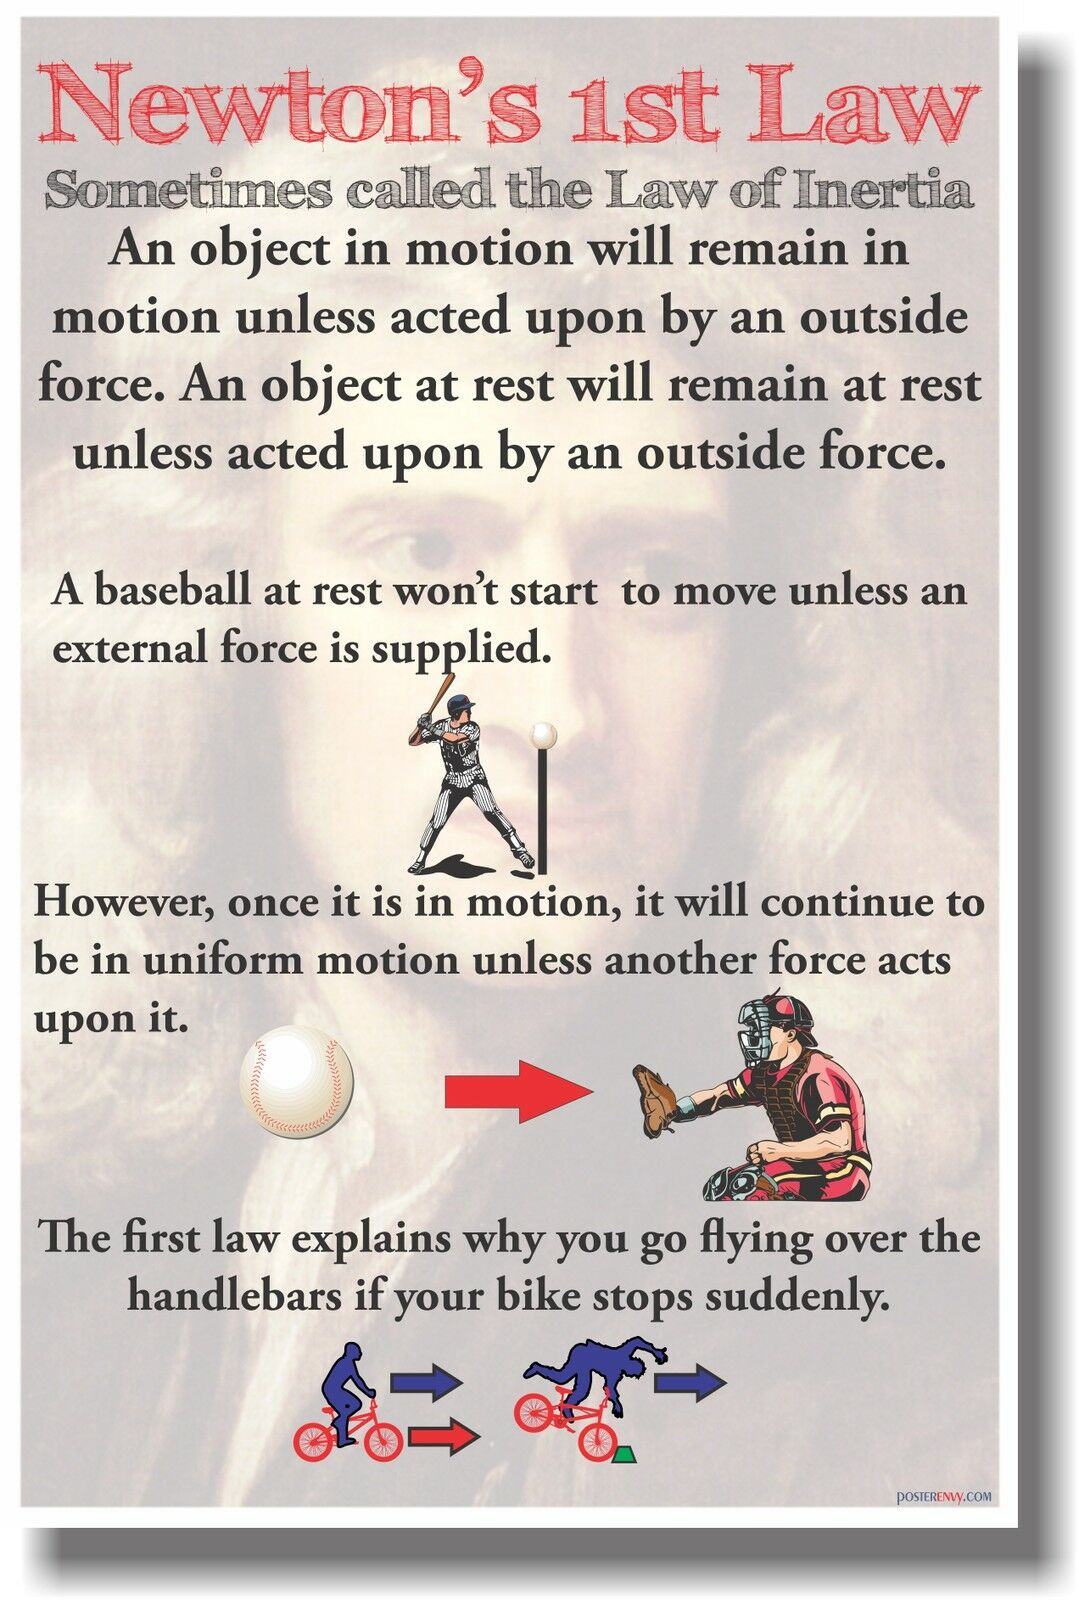 newtons laws in human motion philosophy essay Connect with a live, online newton's laws of motion tutor available 24/7 through video, chat, and whiteboards get live newton's laws of motion help from university experts.